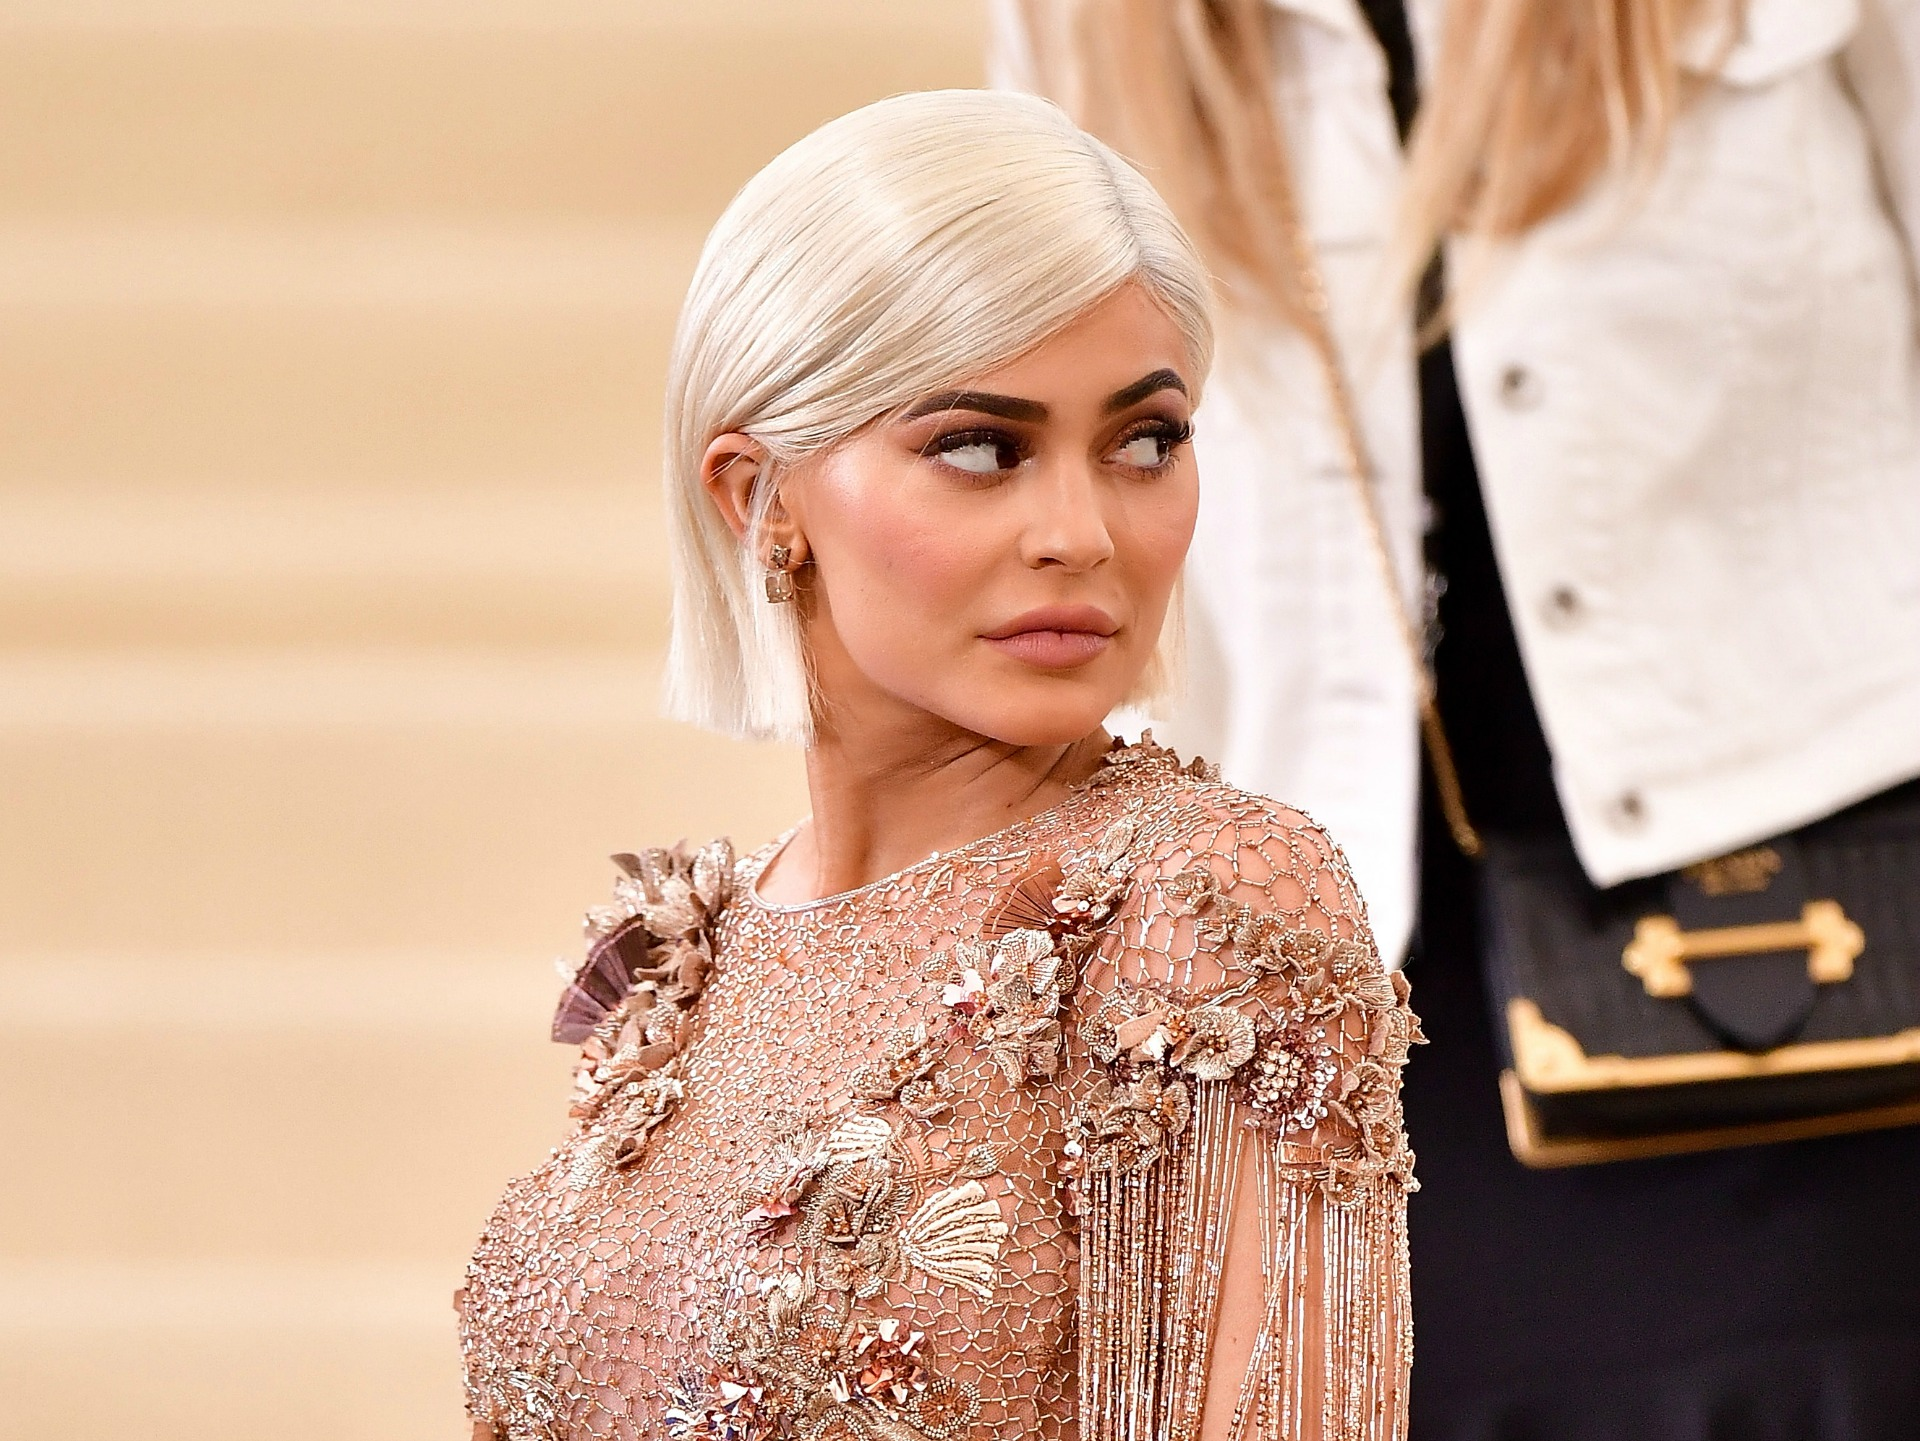 Kylie Jenner Opens Up About Not Getting To Go To Prom